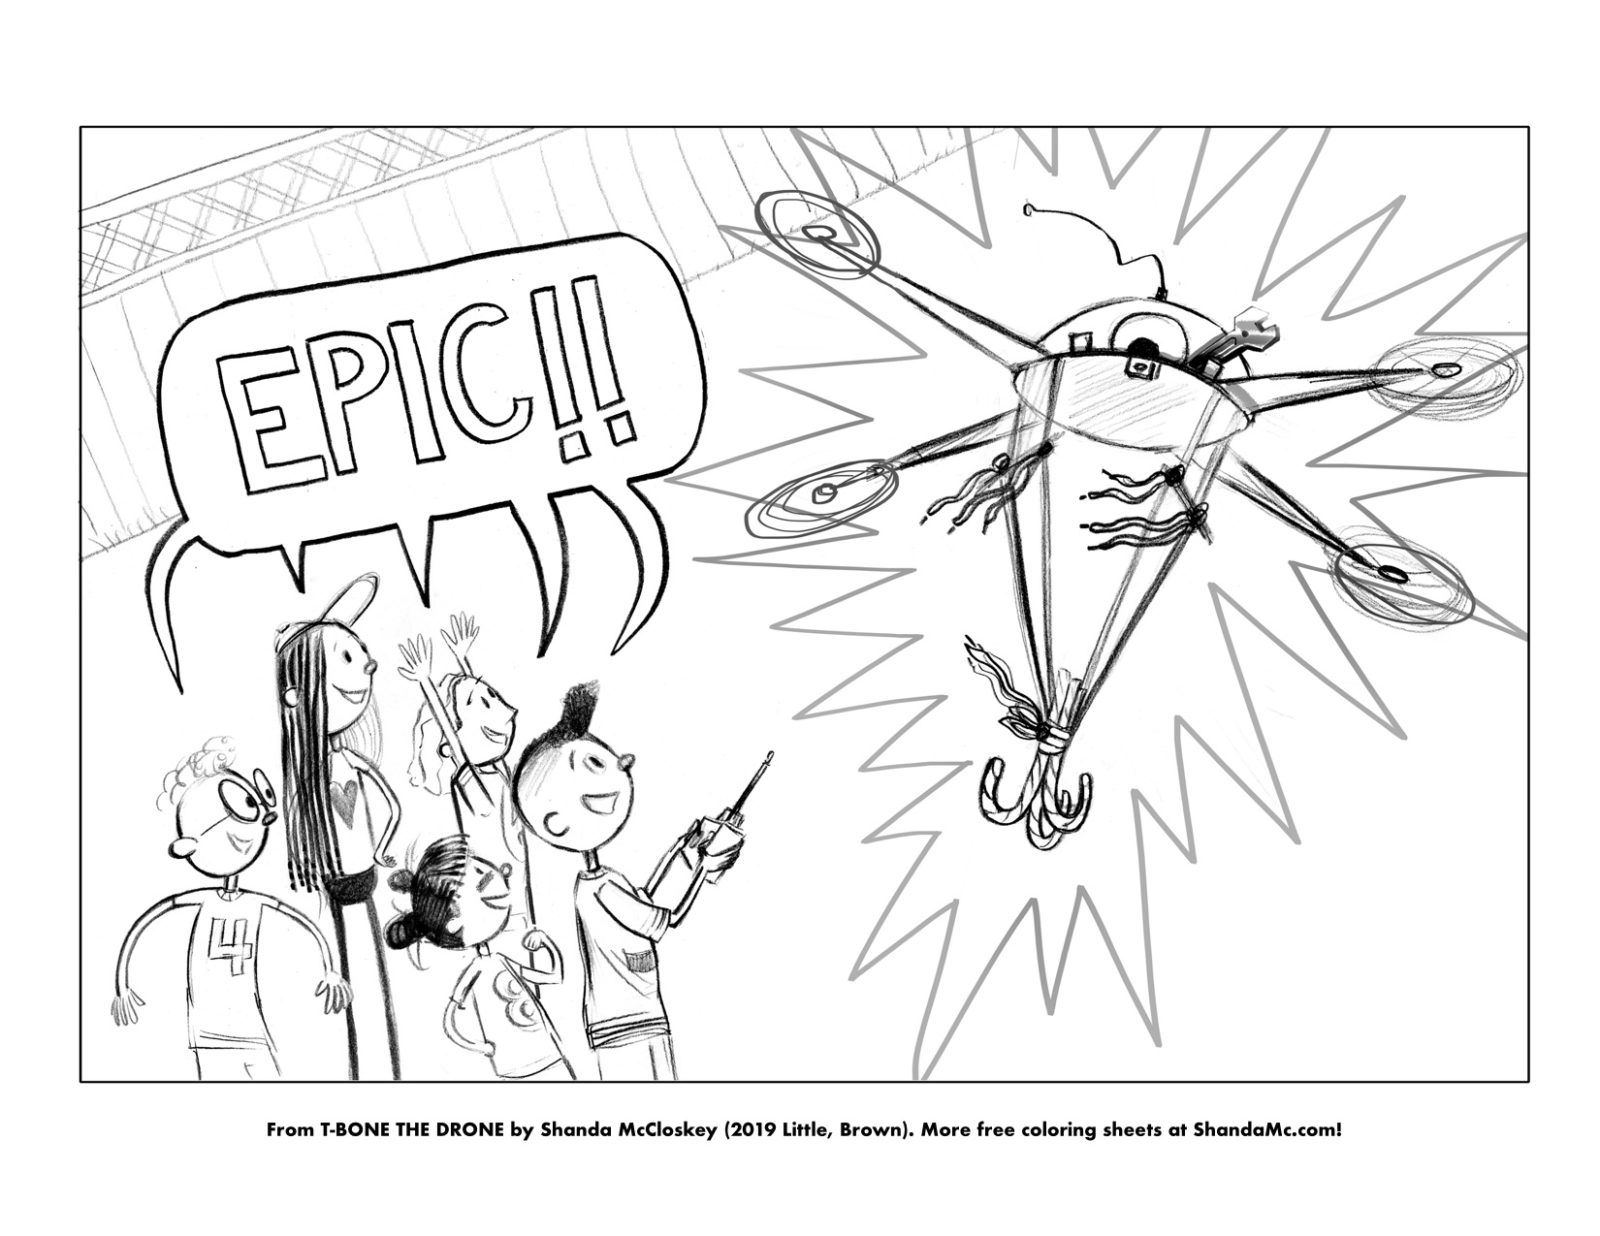 T-Bone the Drone coloring sheet of an epic moment.